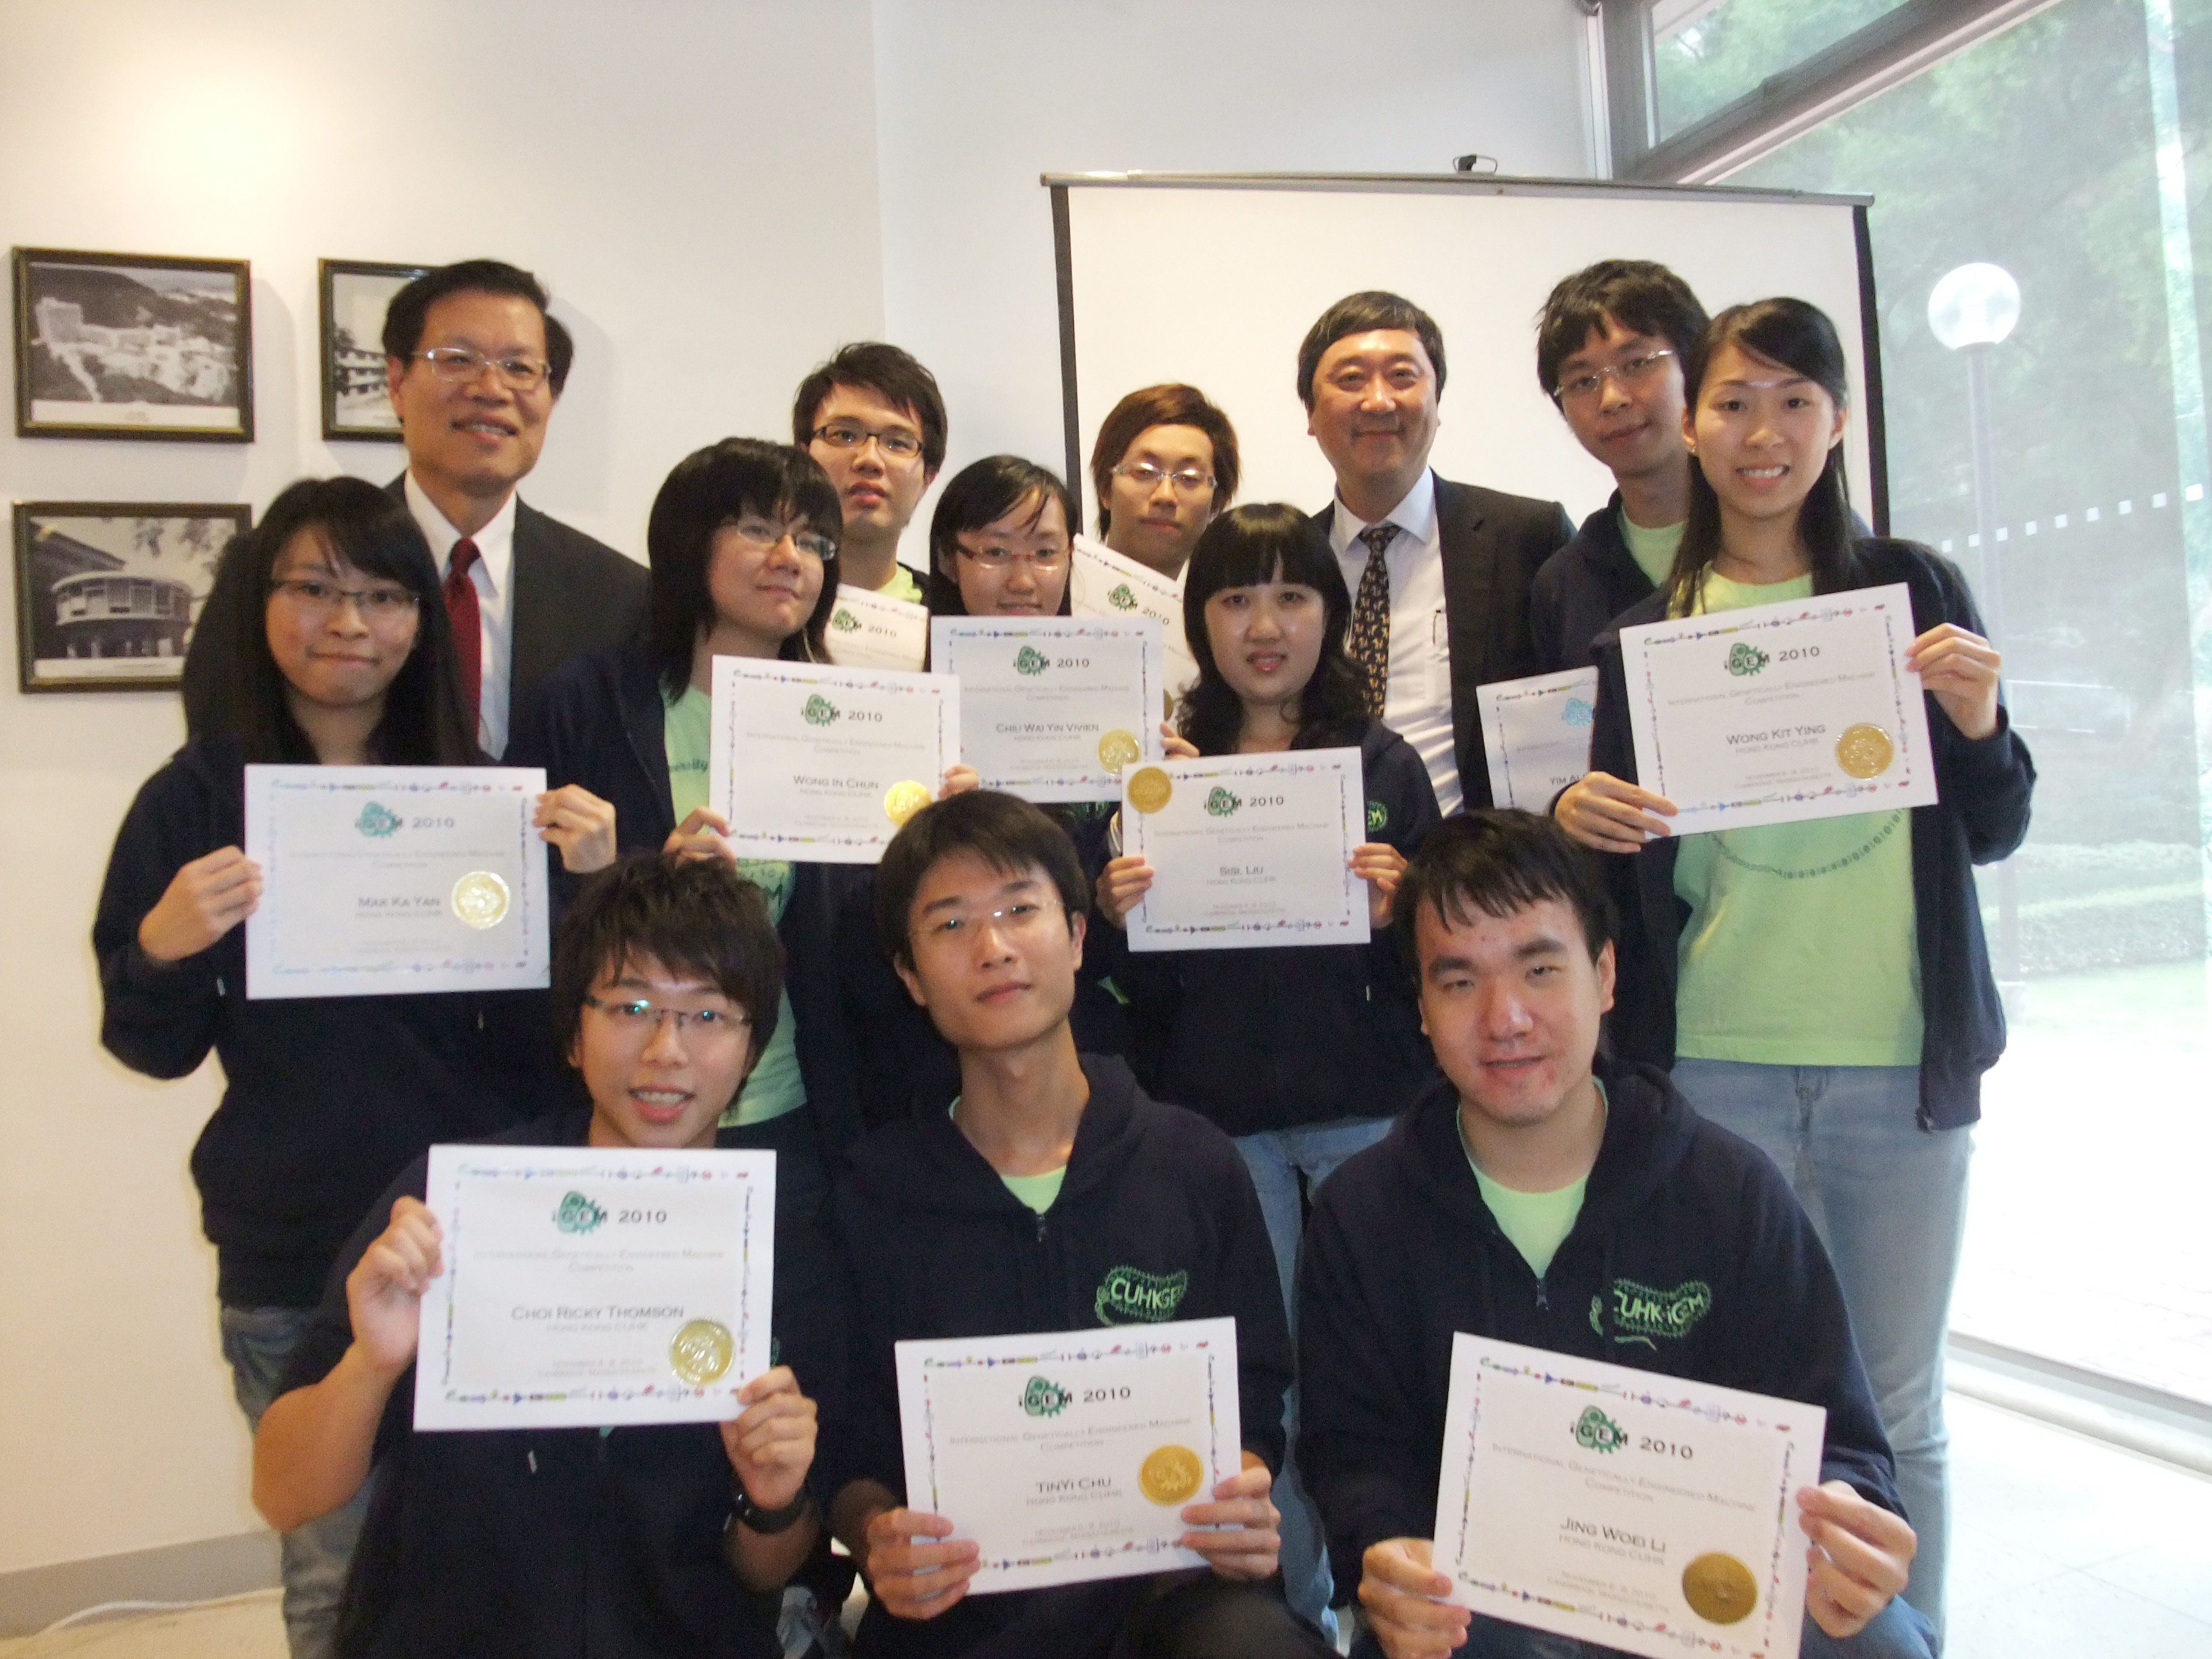 A group photo of Prof. Joseph Sung, CUHK Vice-Chancellor (3rd right, back row), Prof Ng Cheuk-yiu, Dean of Science (1st left, back row) and the award-winning team